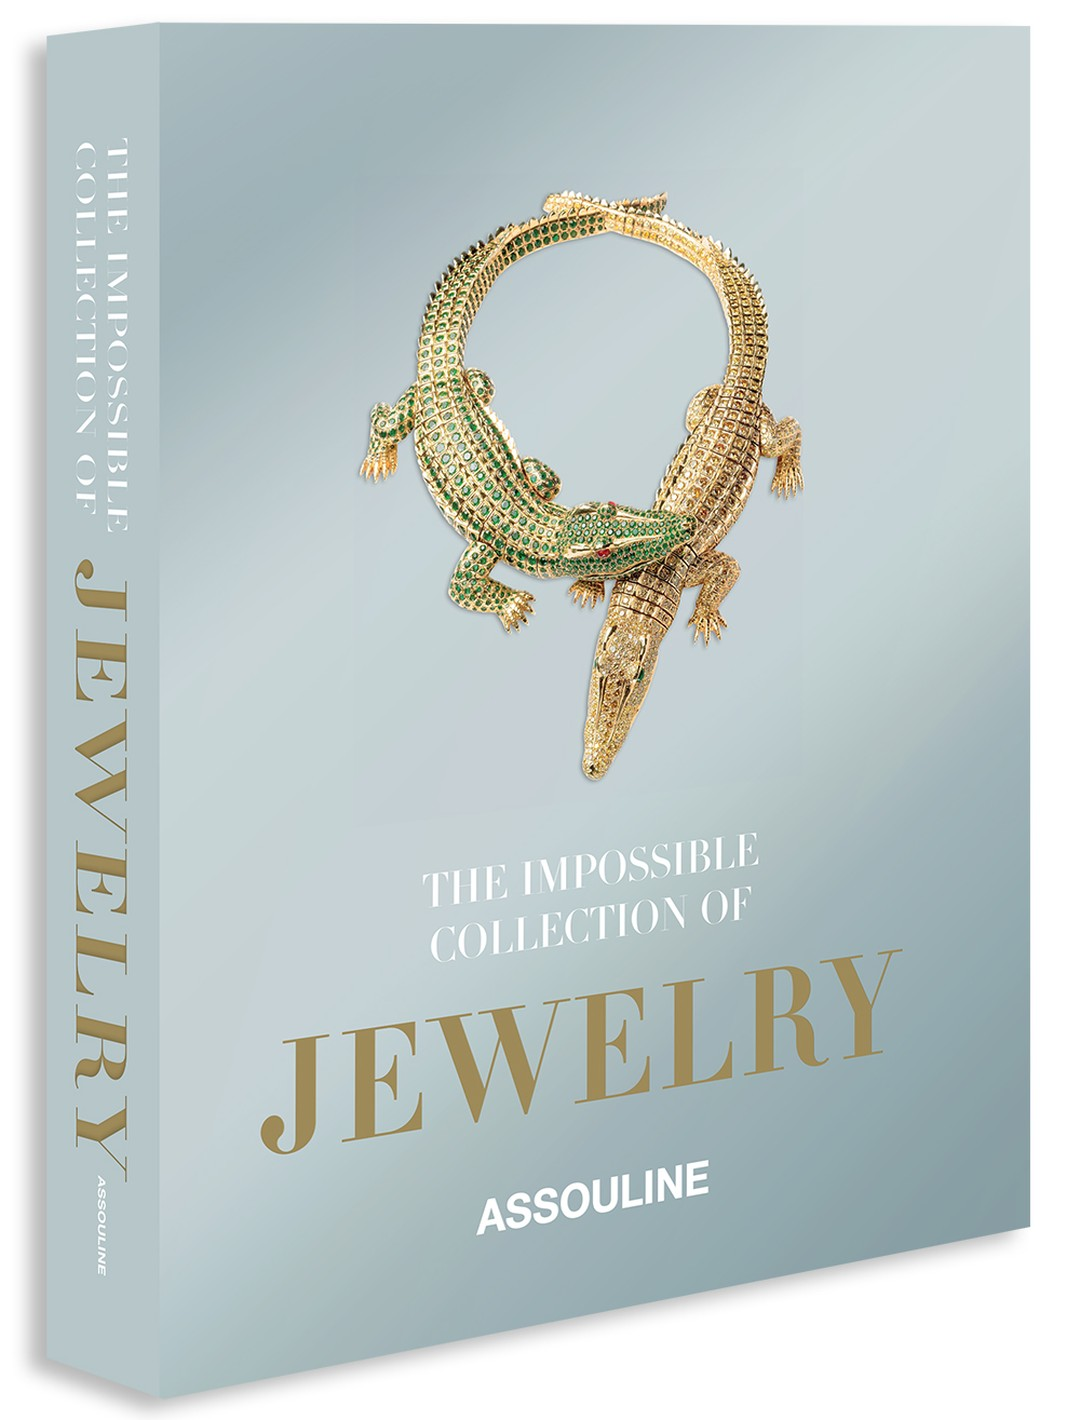 AssoulineImpssibleCollectionofJewelryCover.jpg